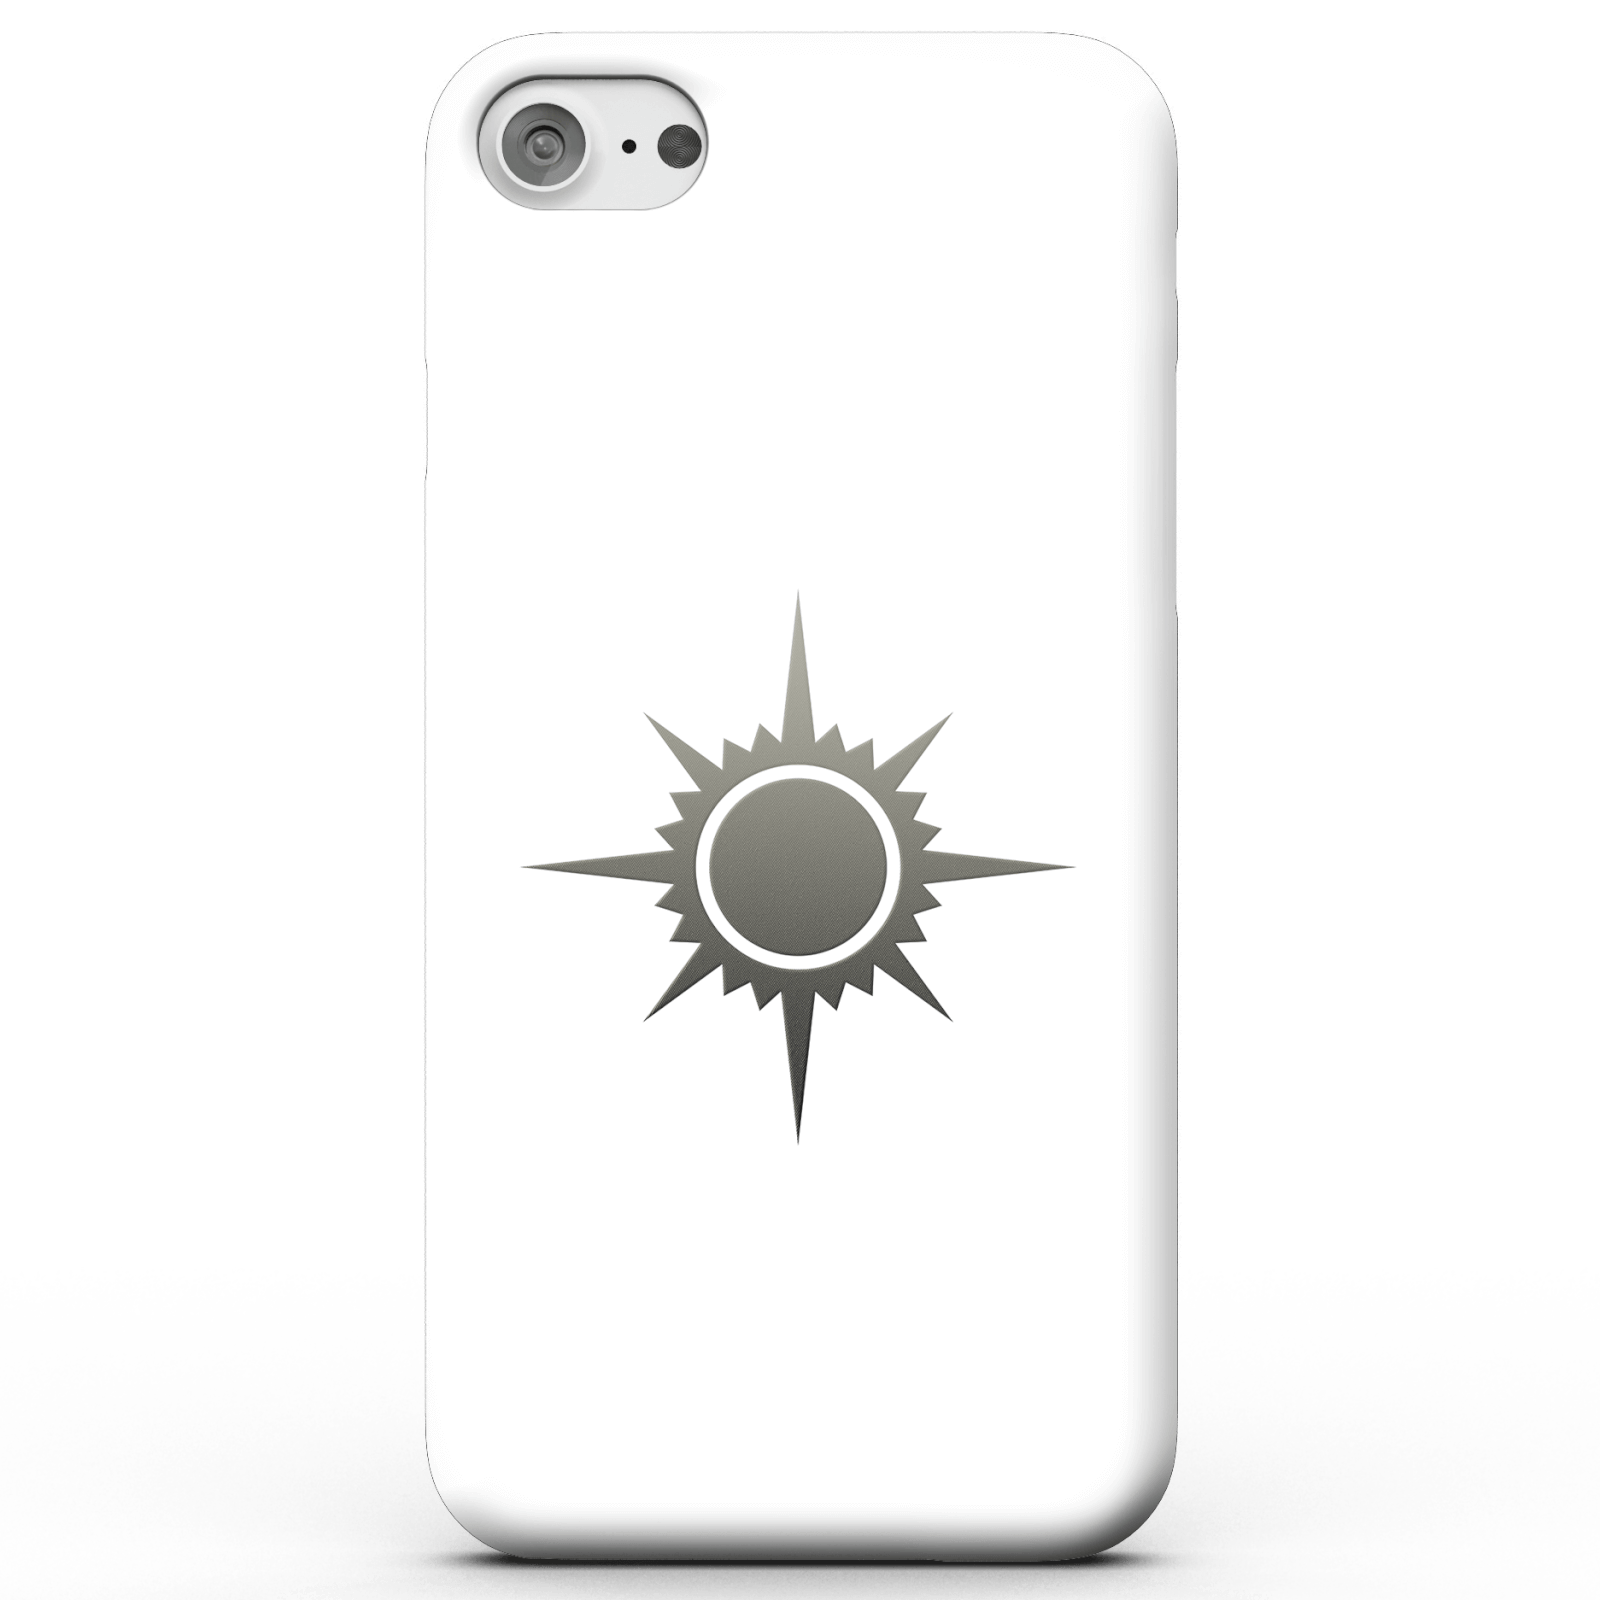 Funda Móvil Magic The Gathering Orzhov para iPhone y Android - iPhone 5C - Carcasa rígida - Brillante de Magic The Gathering